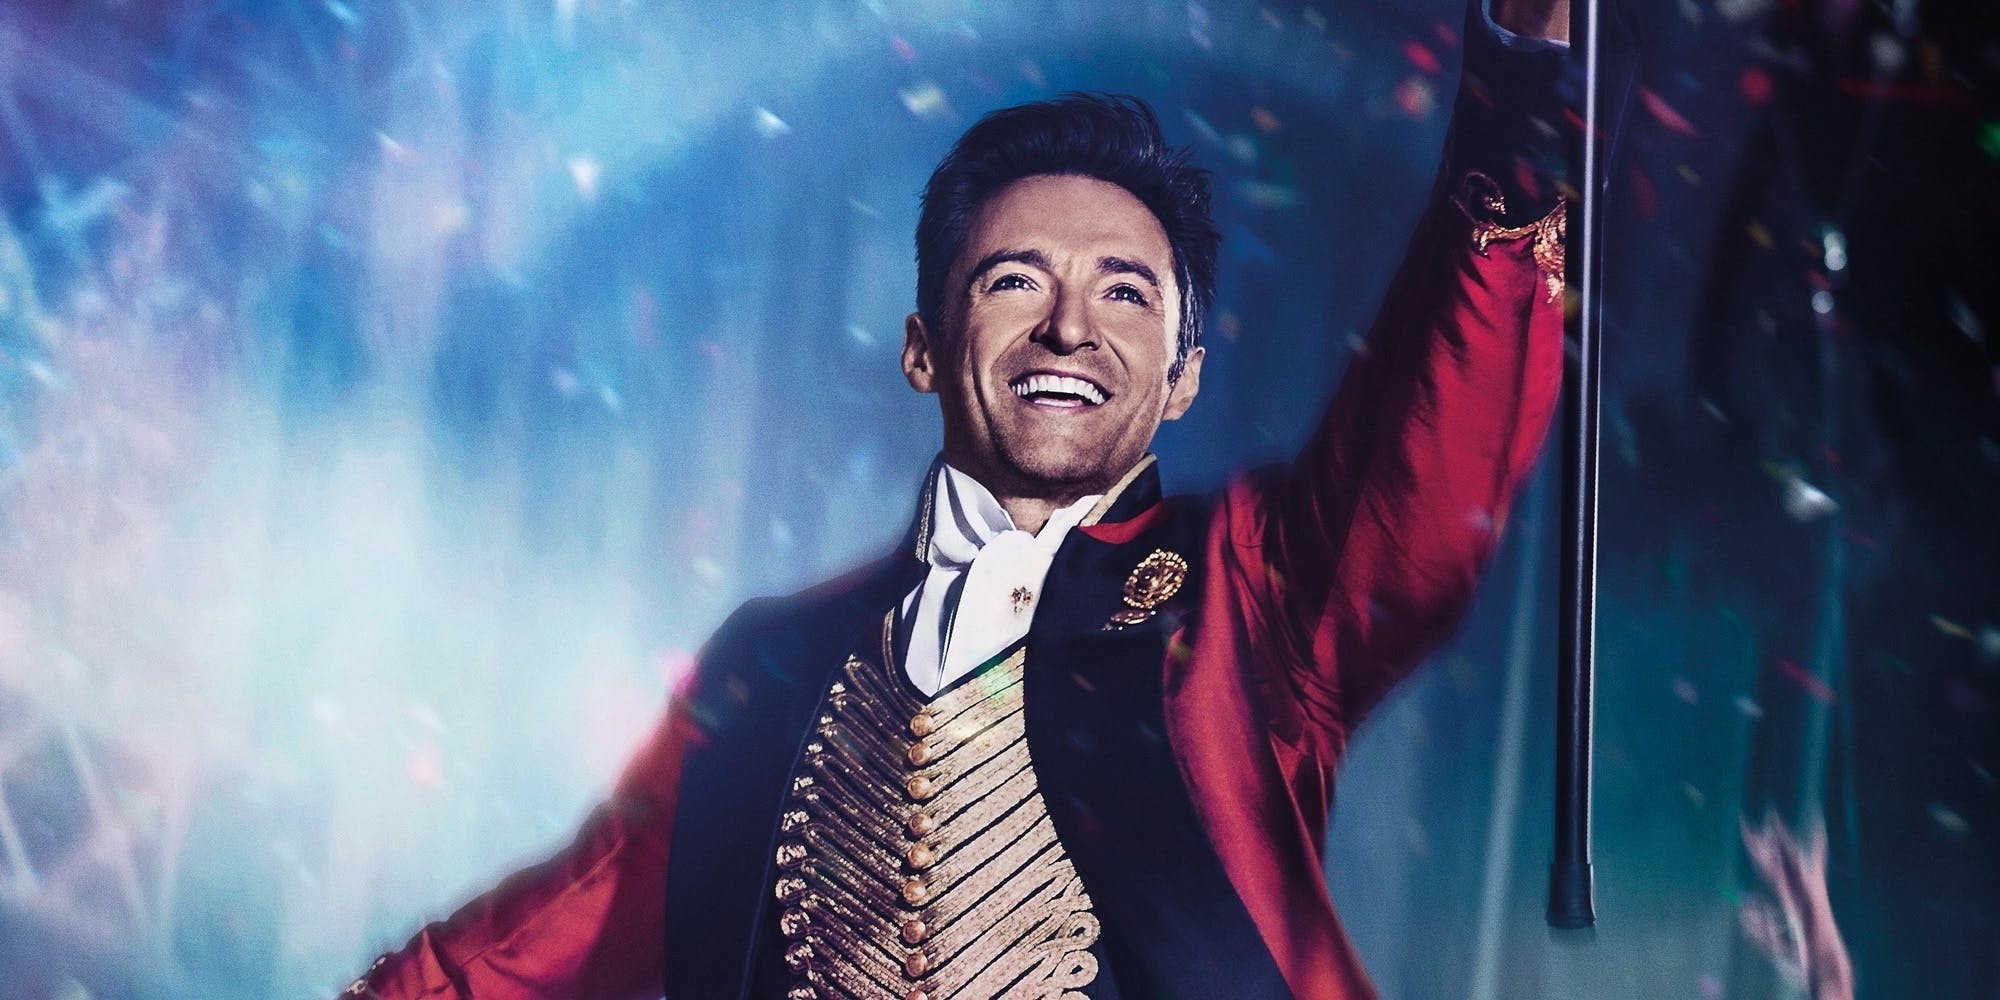 O rei do show the greatest showman 2017 crtica stopboris Gallery